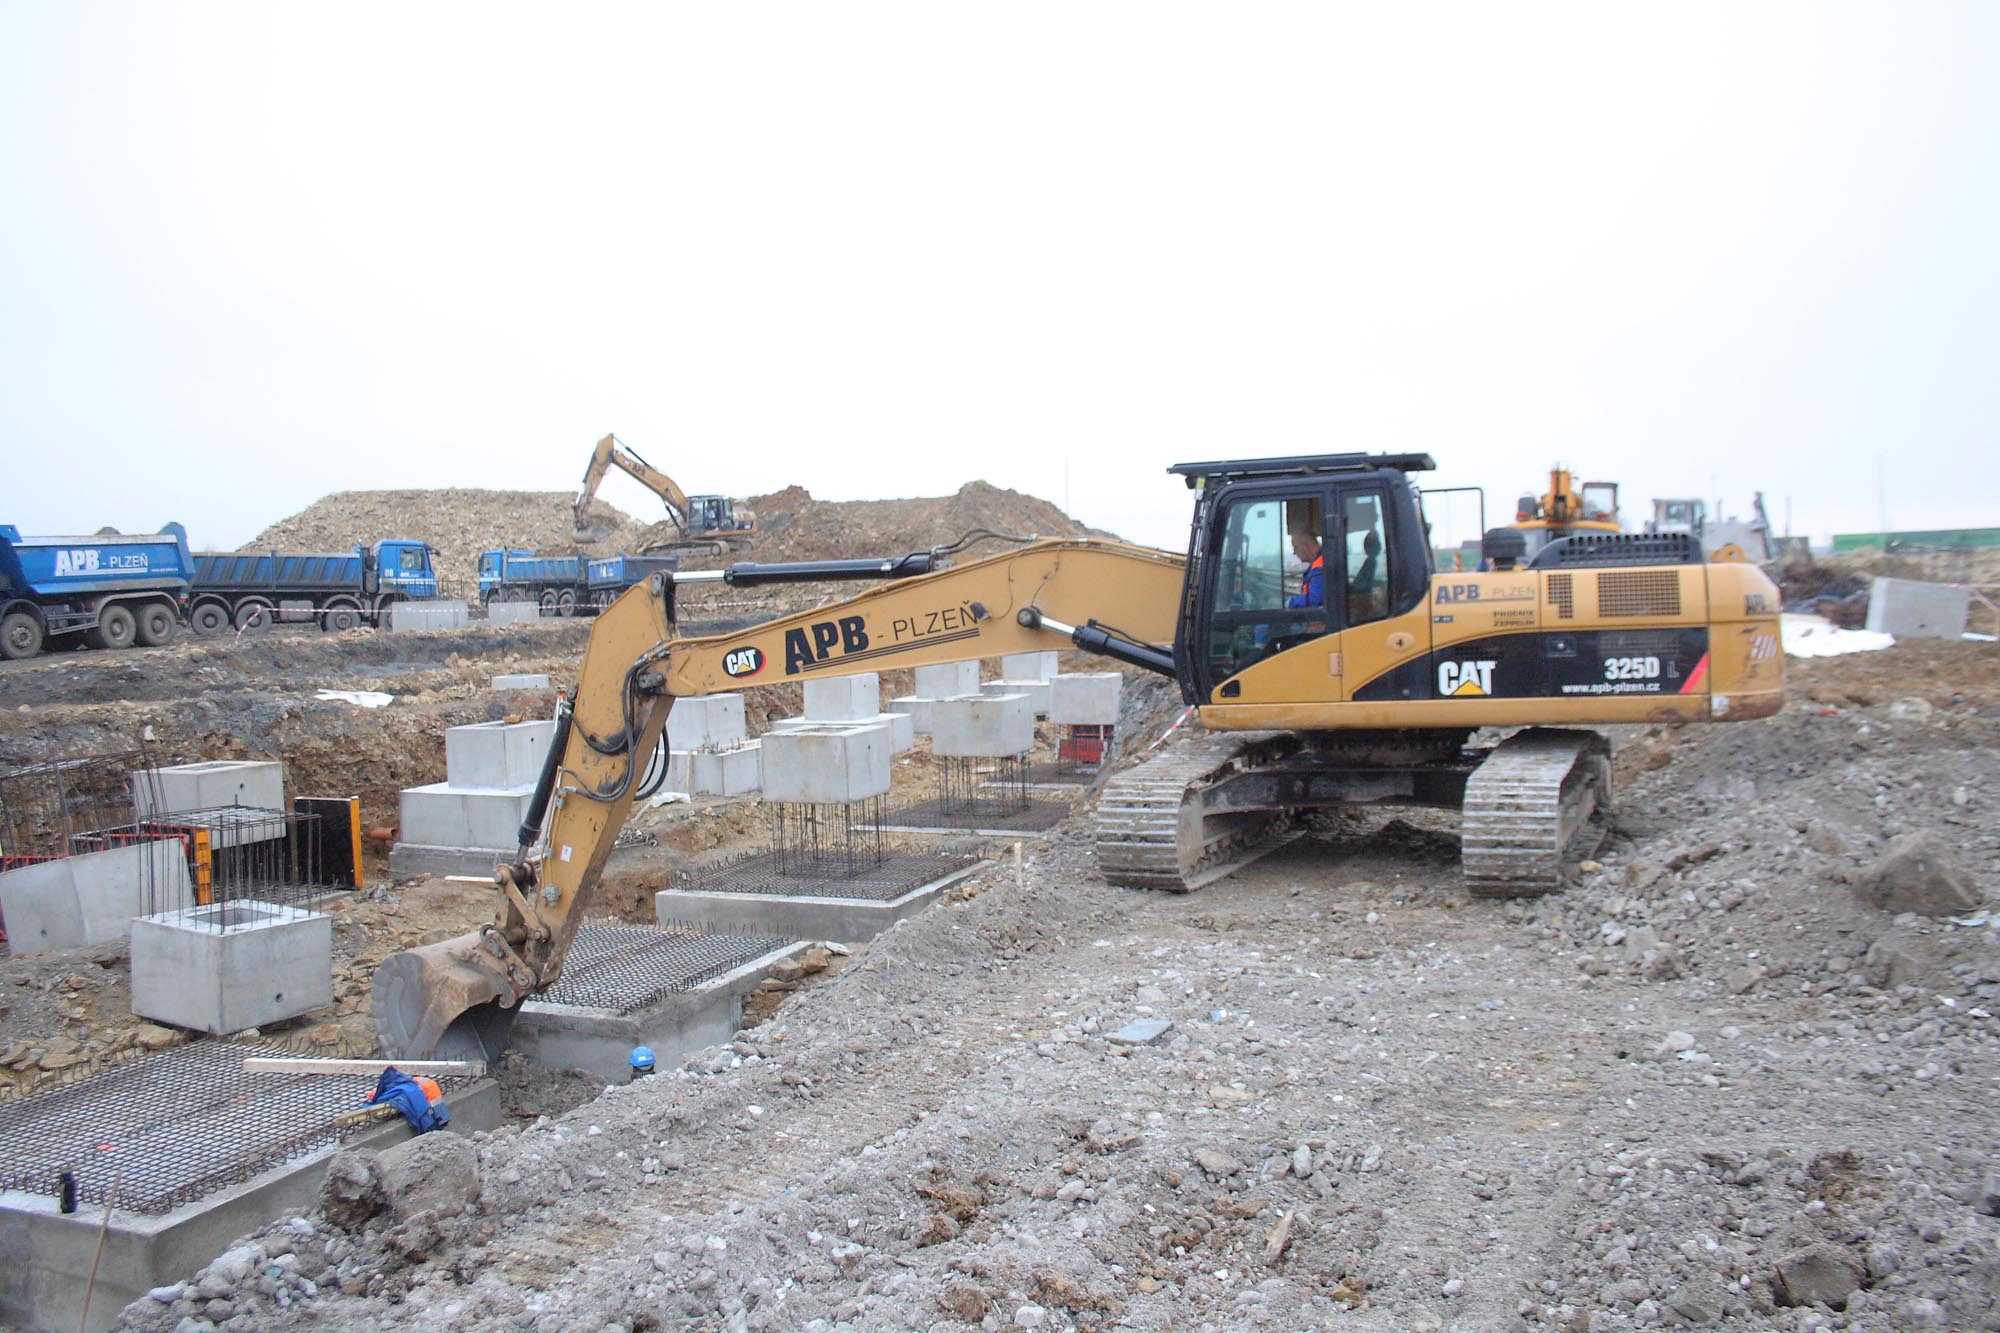 Earthwork Construction Management : Earthworks for the construction of a new building lego